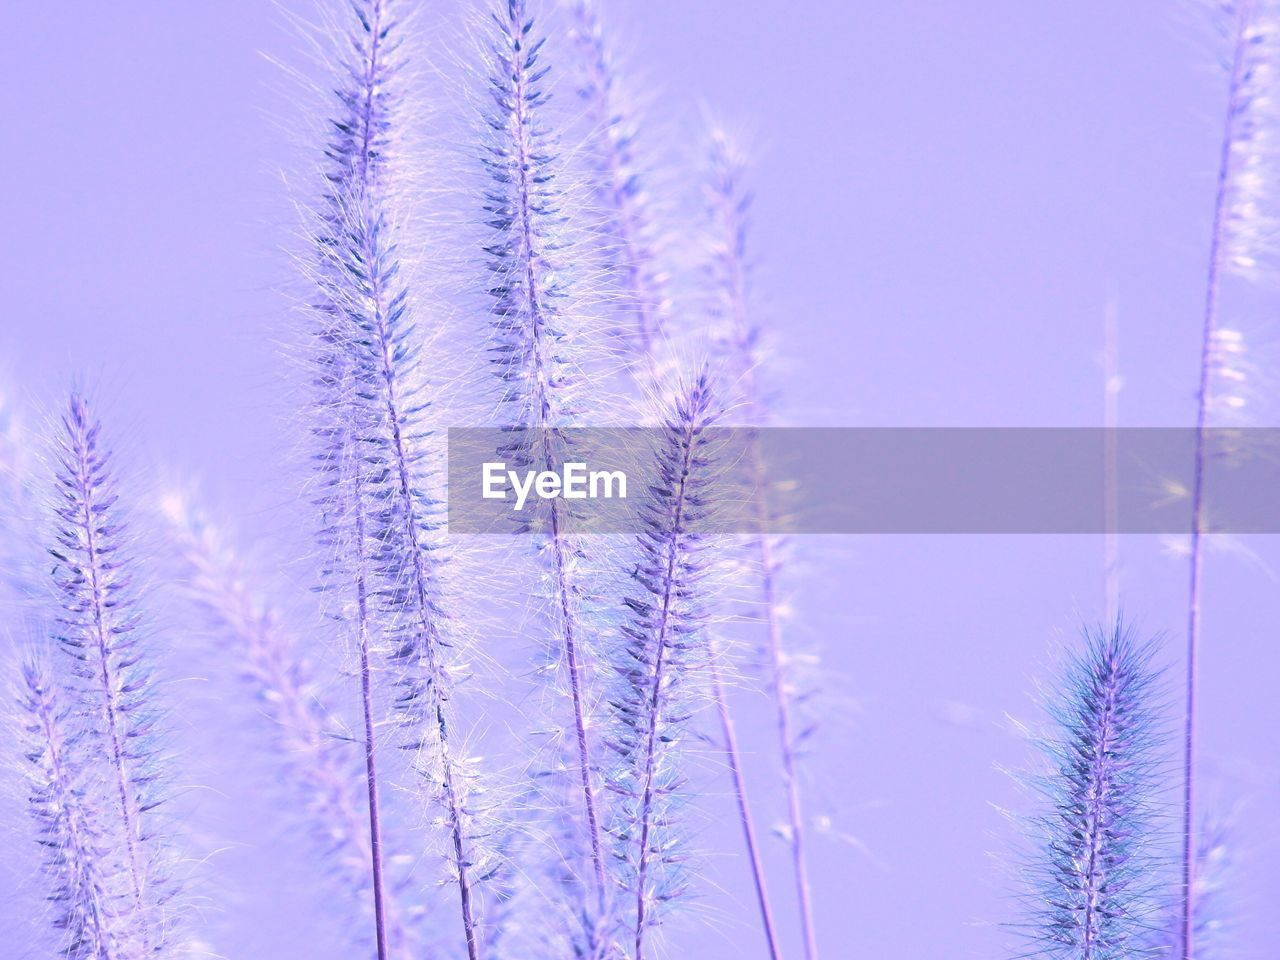 nature, beauty in nature, growth, no people, tranquility, plant, day, fragility, outdoors, tranquil scene, close-up, winter, flower, freshness, cold temperature, sky, tree